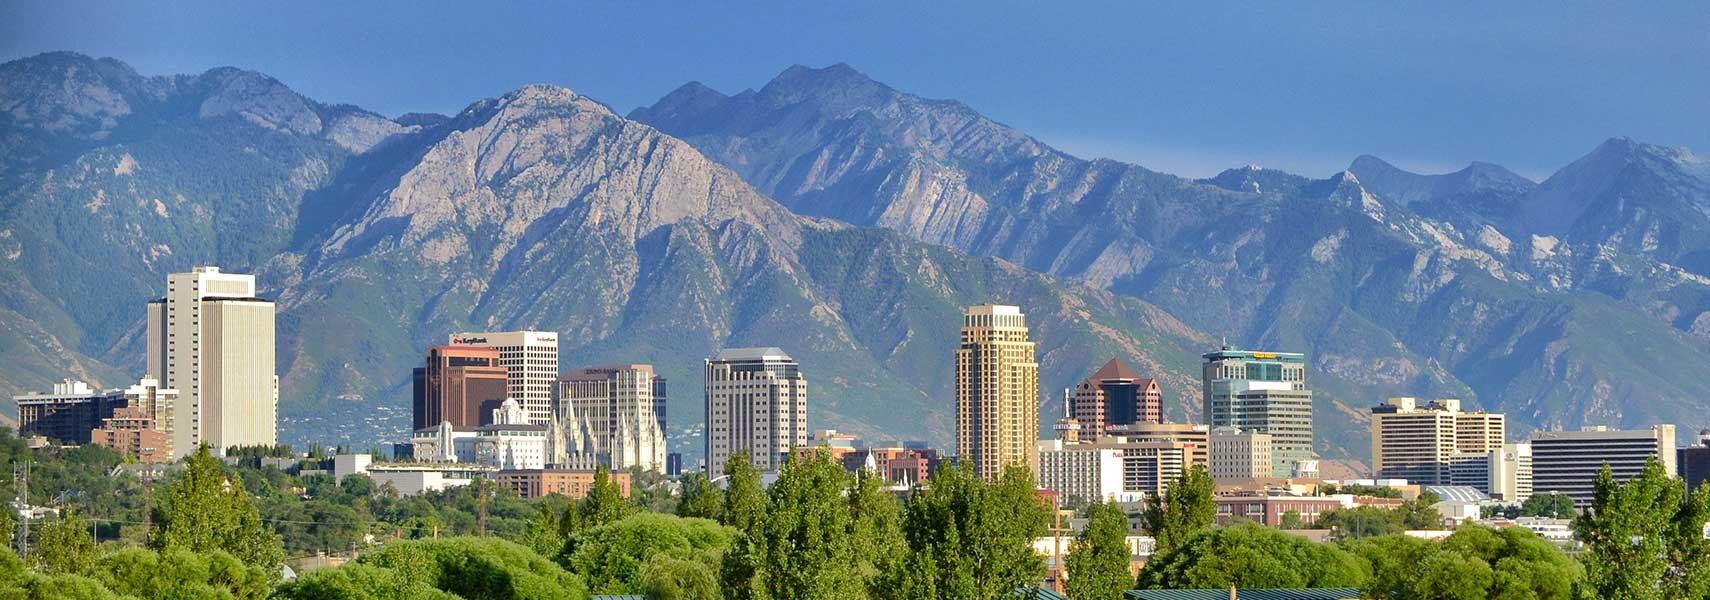 Google Map Of Salt Lake City Utah USA Nations Online Project - Salt lake city map of us